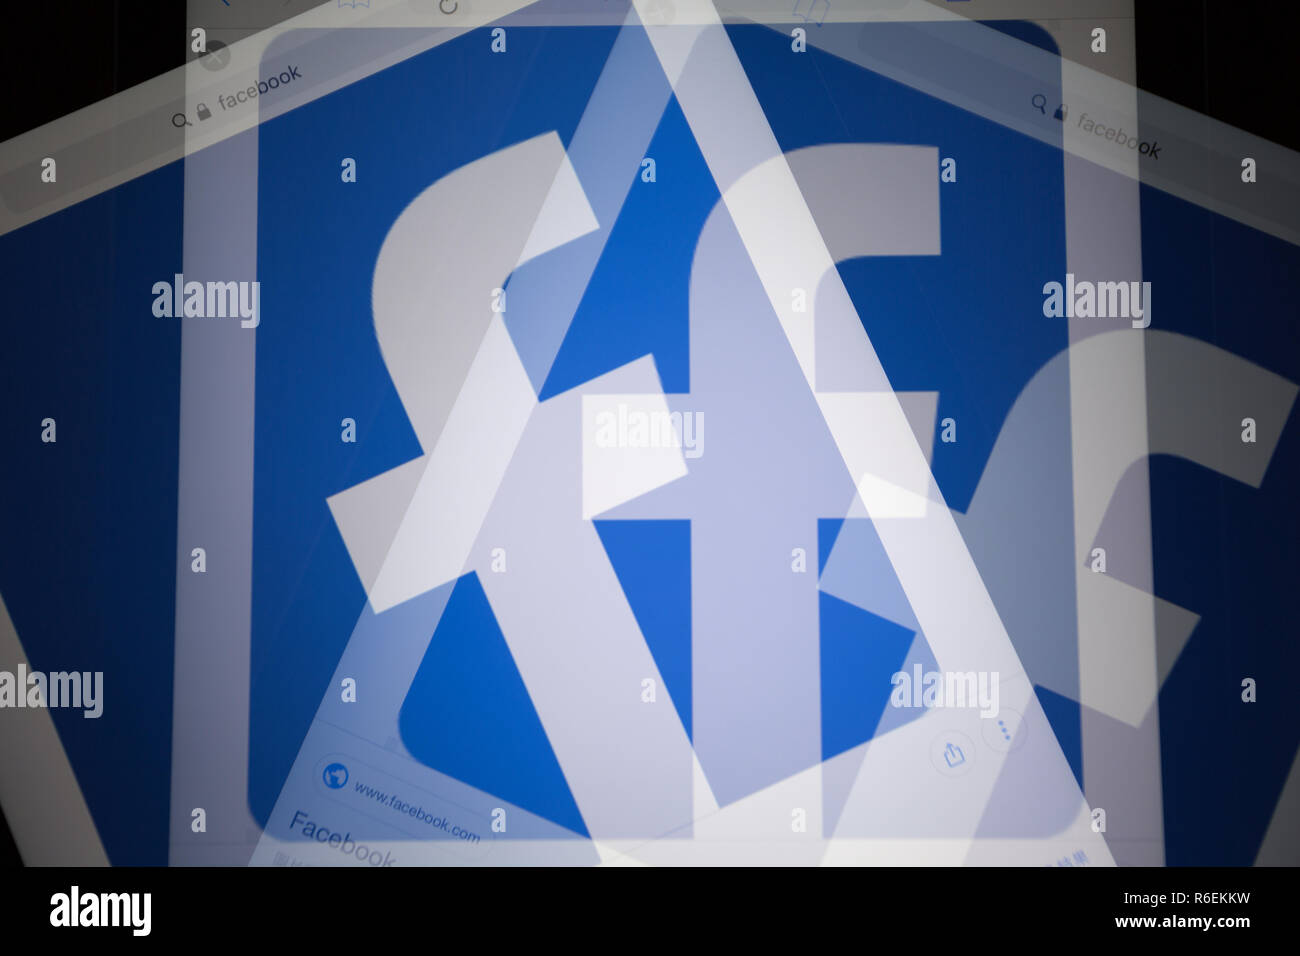 Facebook, online social media and social networking service company, logo is shown on Apple iPad Air device screen. Shoot in-camera multiple exposure - Stock Image